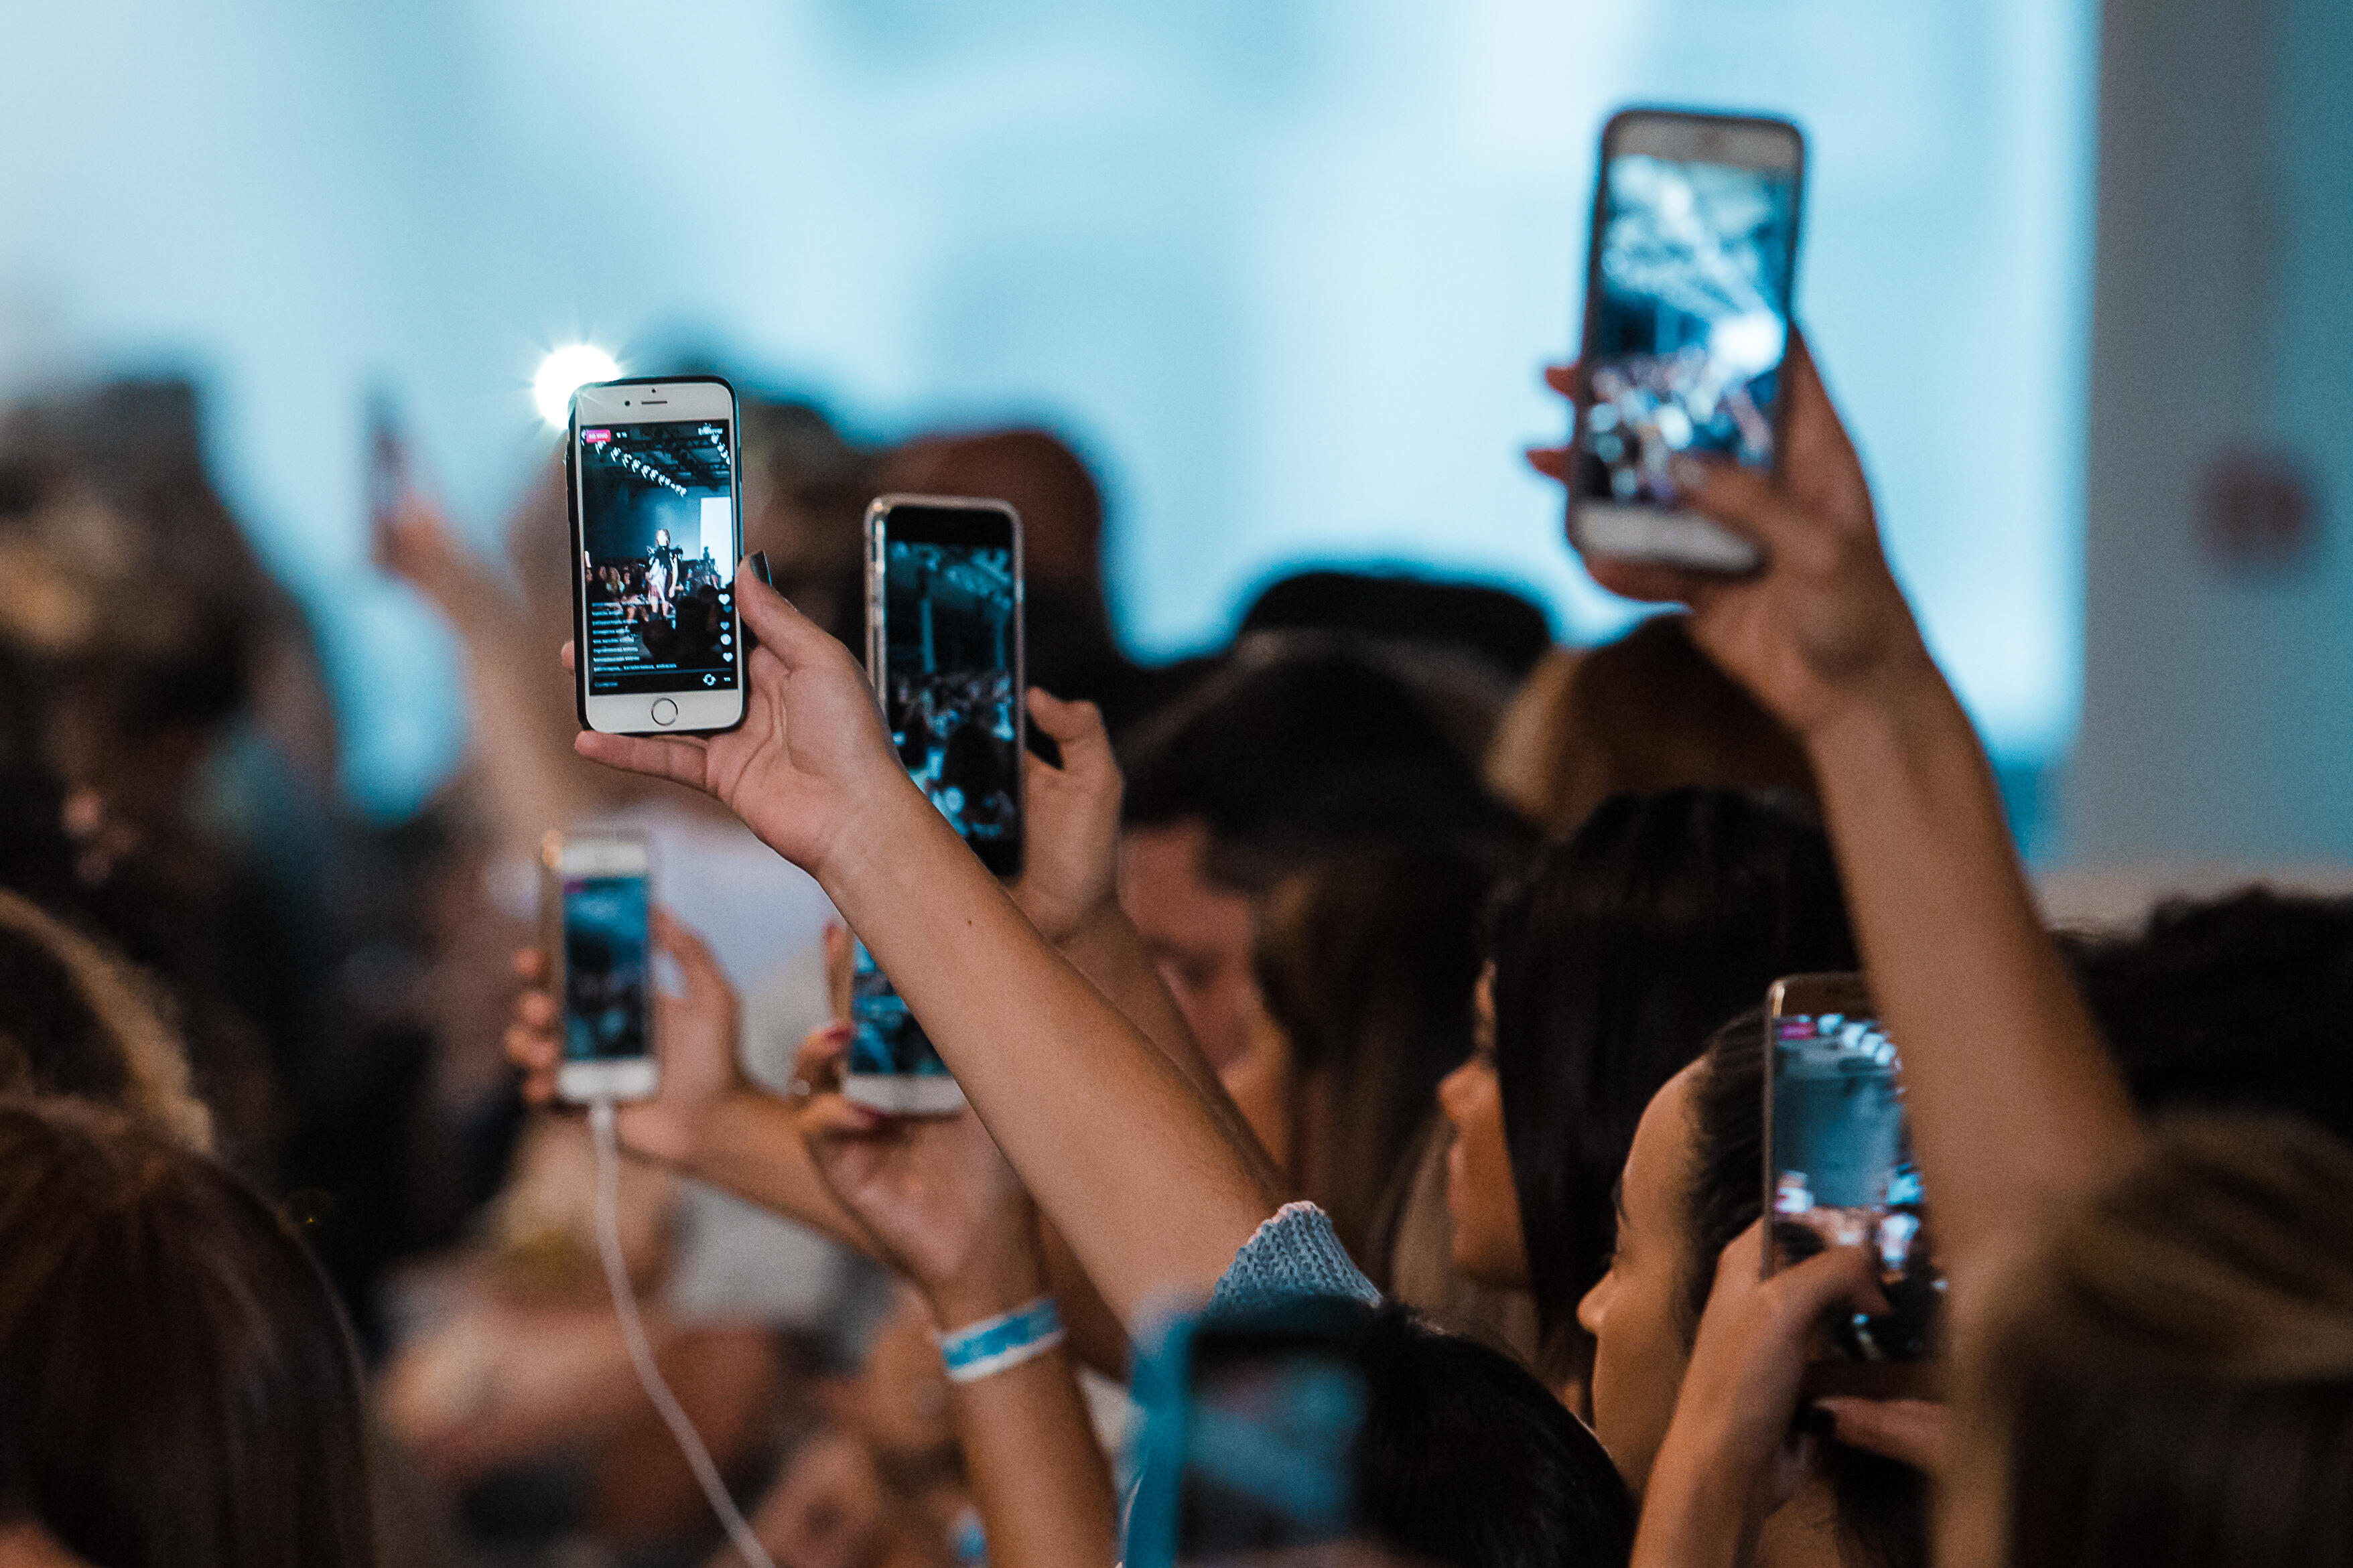 SAO PAULO, BRAZIL - MARCH 16: An alternative view of the audience with cell phones in live facebook and snapchat in Tig fashion show at Sao Paulo Fashion Week N 43 SPFW Fall/Winter 2017 on March 16, 2017 in Sao Paulo, Sao Paulo. (Photo by Mauricio Santana